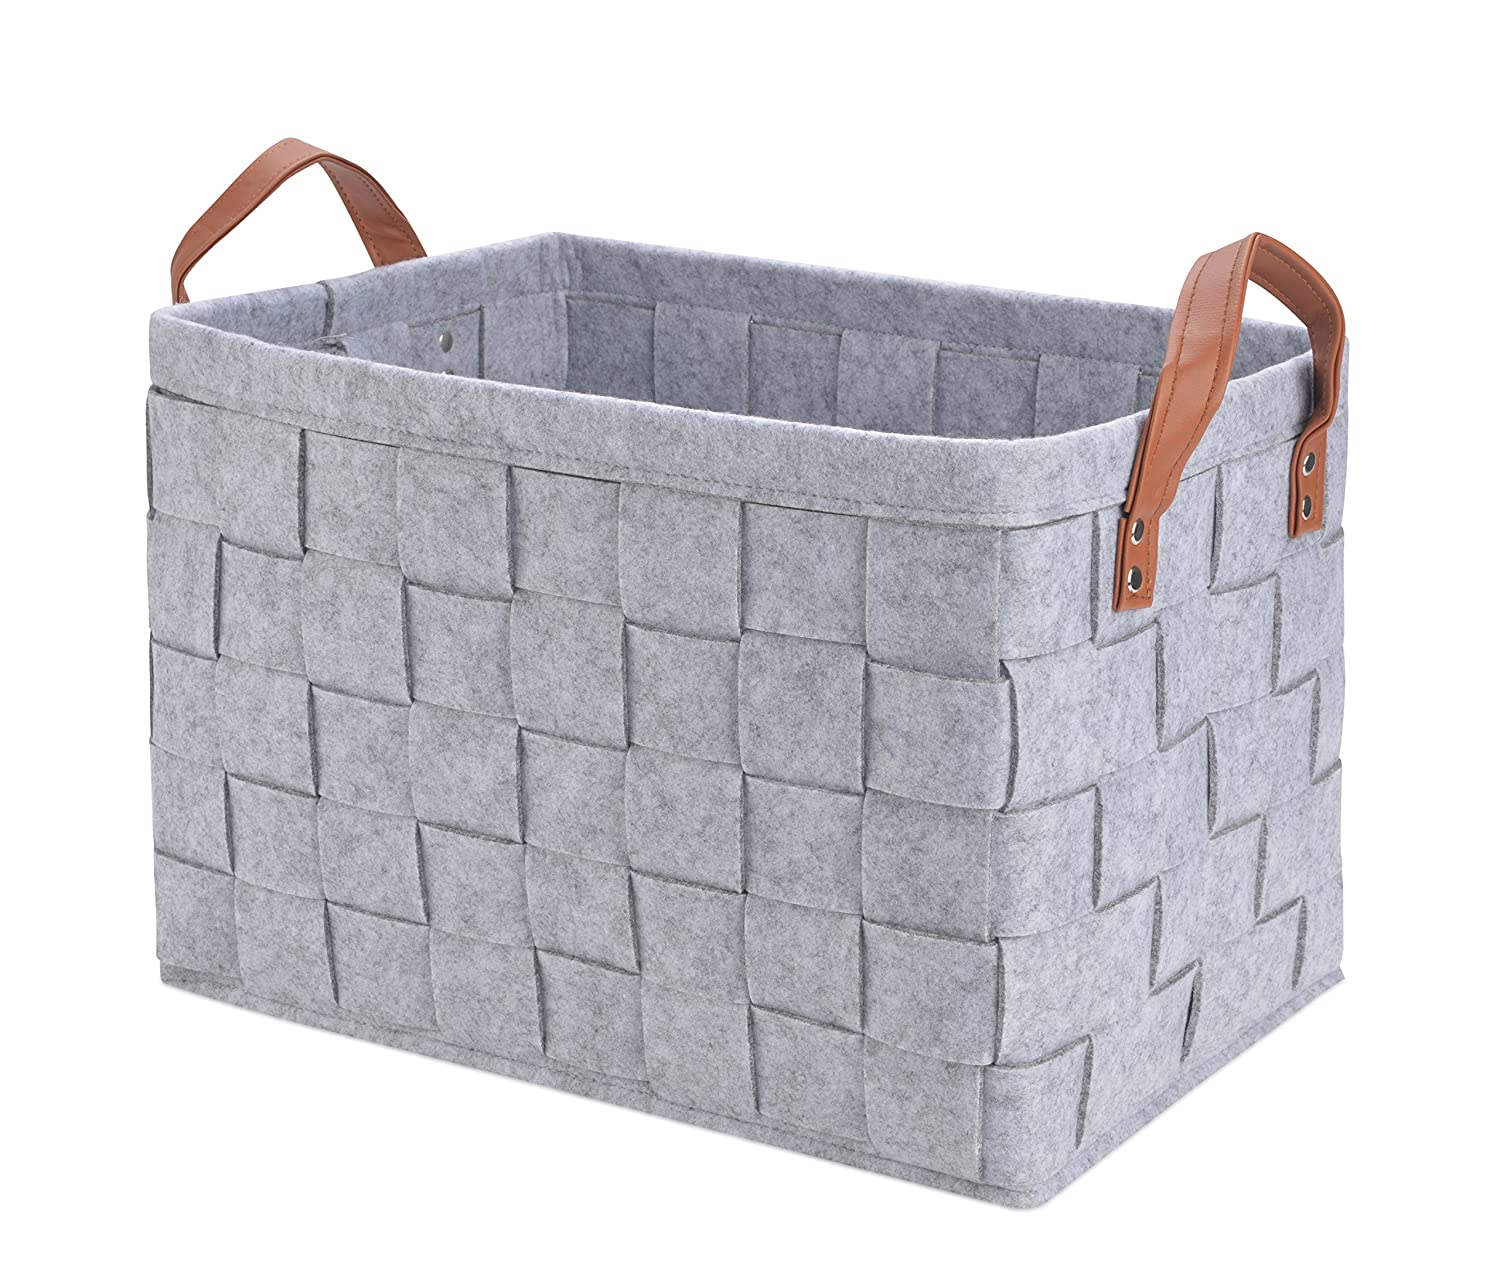 Perber Storage Baskets,Handmade Decorative Collapsible Rectangular Felt  Fabric Storage Bin,Large Enough For